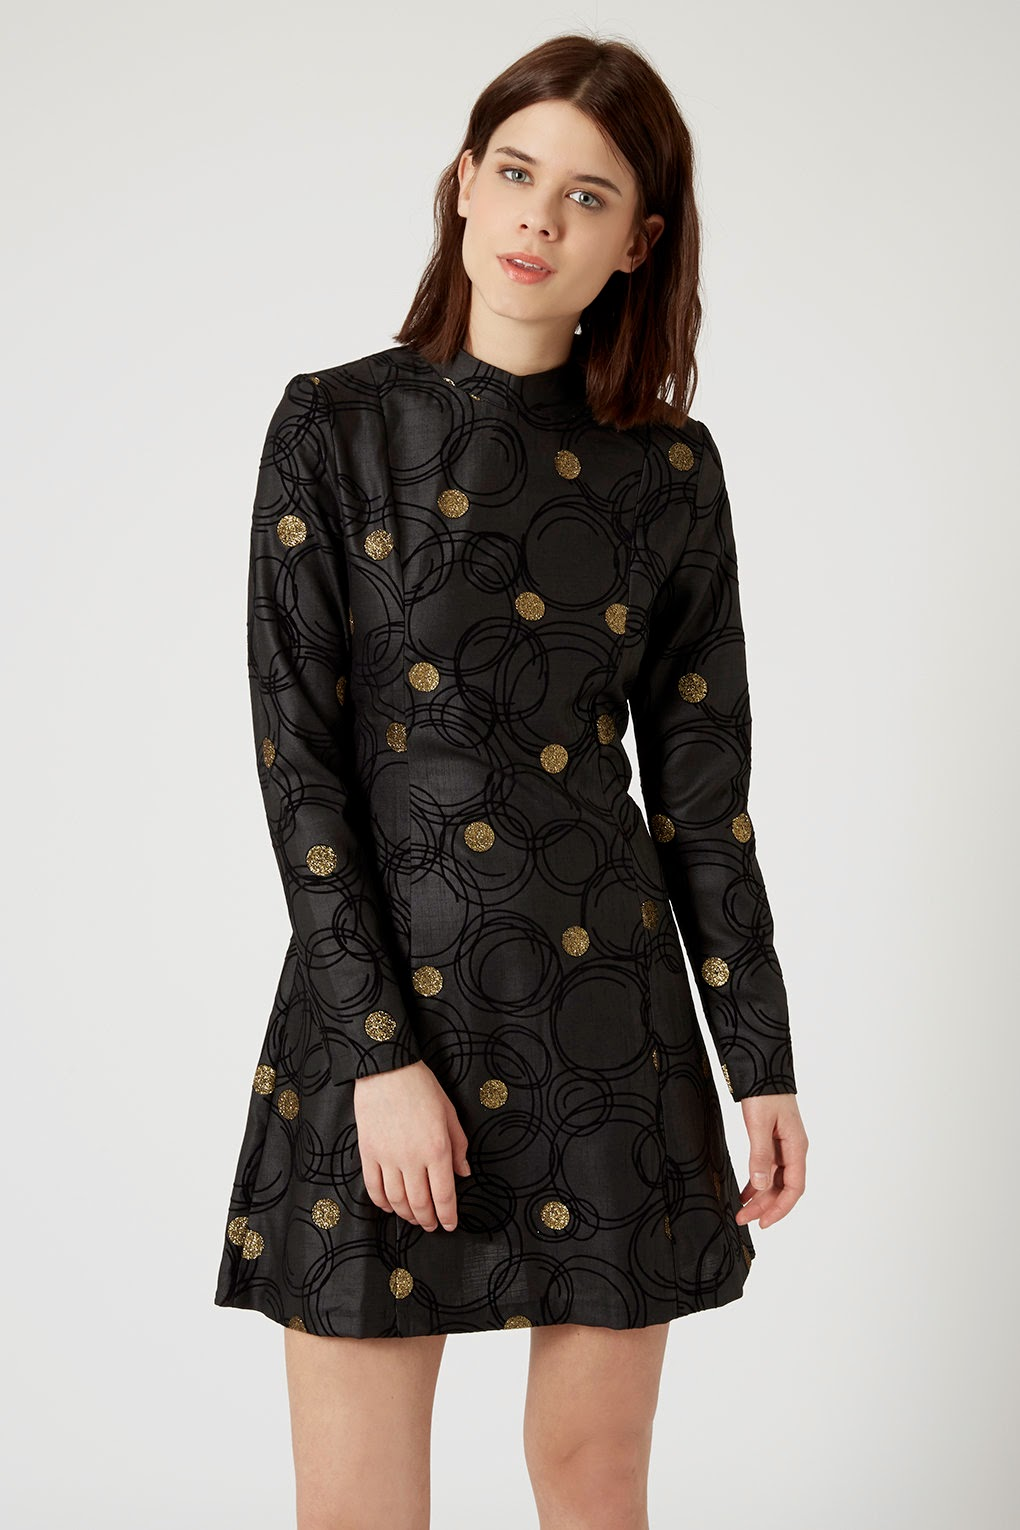 sister jane black dress gold spots, black dress gold spots,